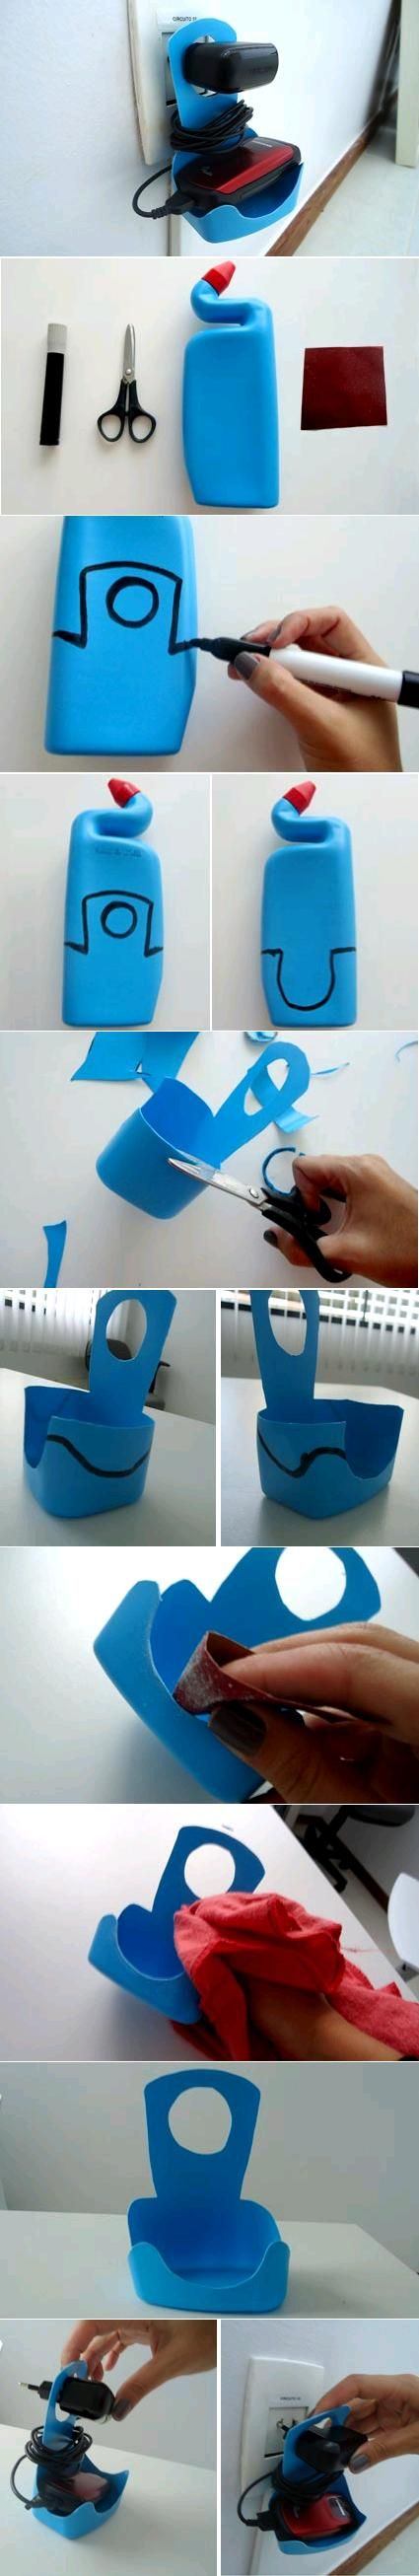 Diy Plastic Bottle Mobile Phone Charger Holder Diy Plastic Bottle